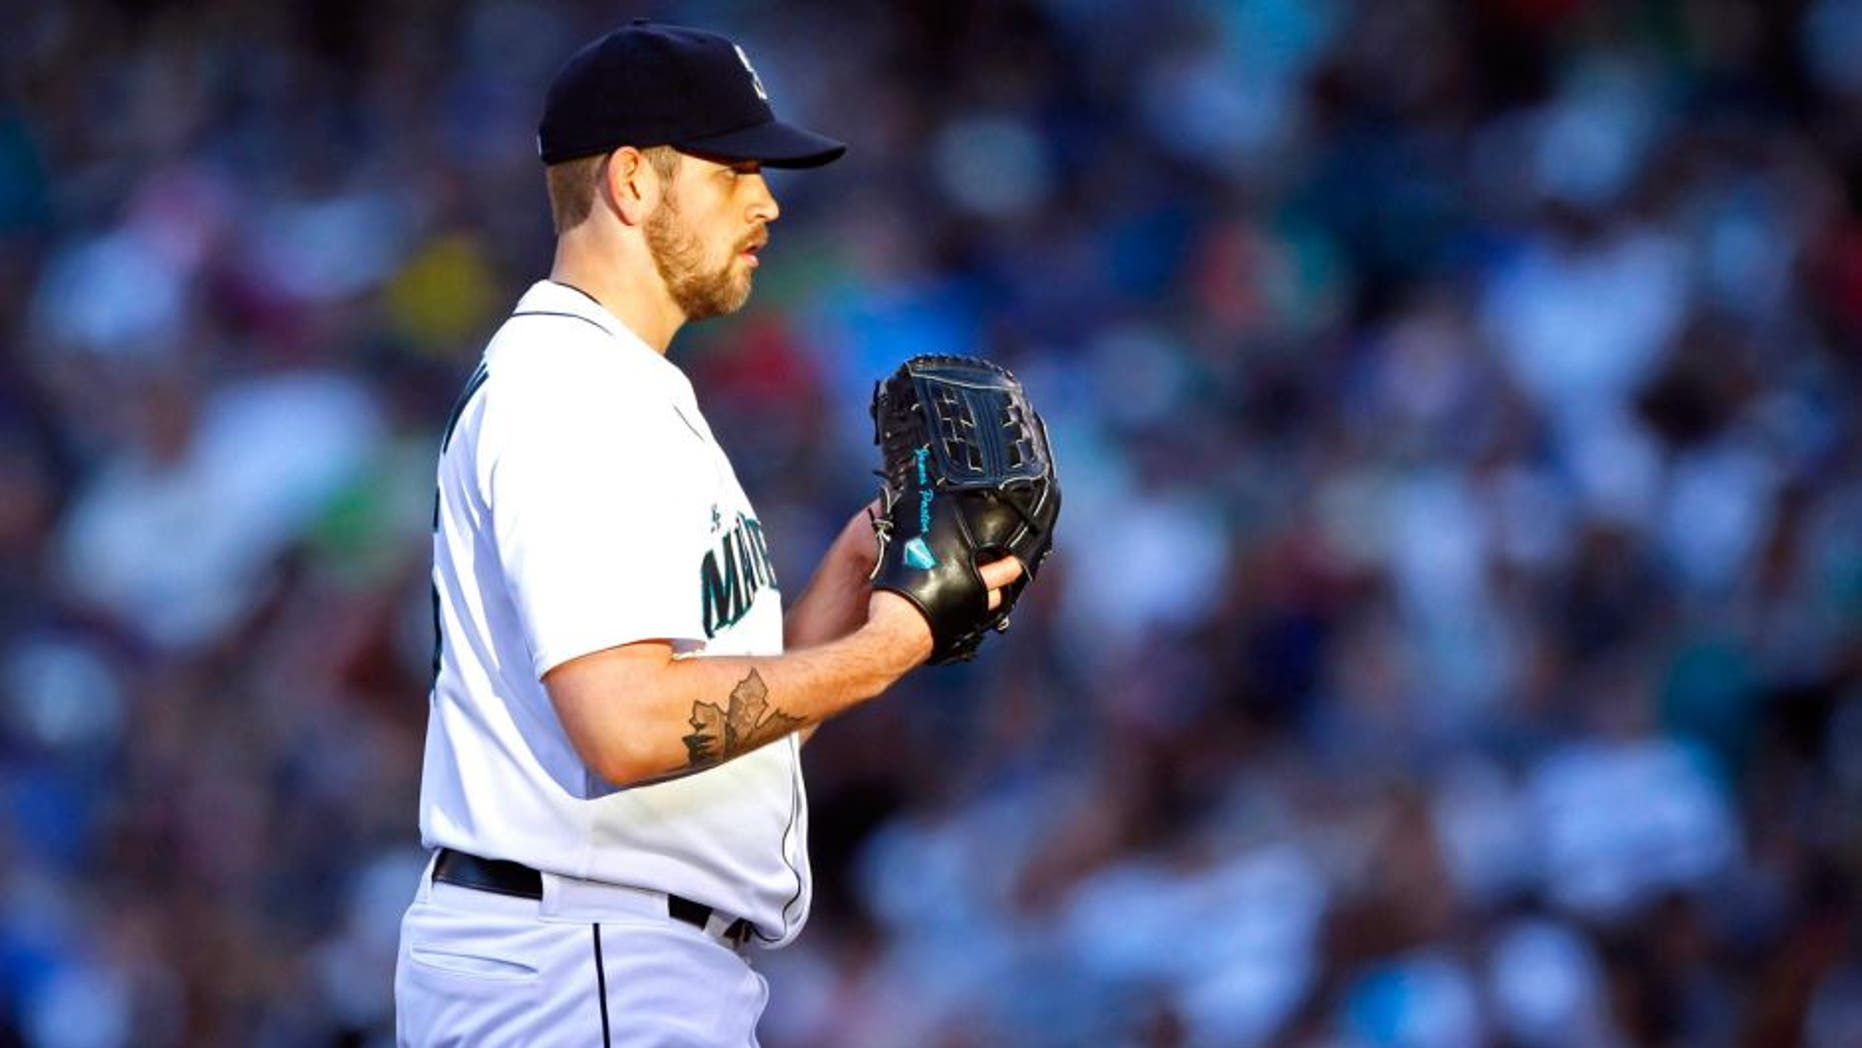 Aug 9, 2014; Seattle, WA, USA; Seattle Mariners pitcher James Paxton (65) stands on the mound against the Chicago White Sox during the sixth inning at Safeco Field. Mandatory Credit: Joe Nicholson-USA TODAY Sports